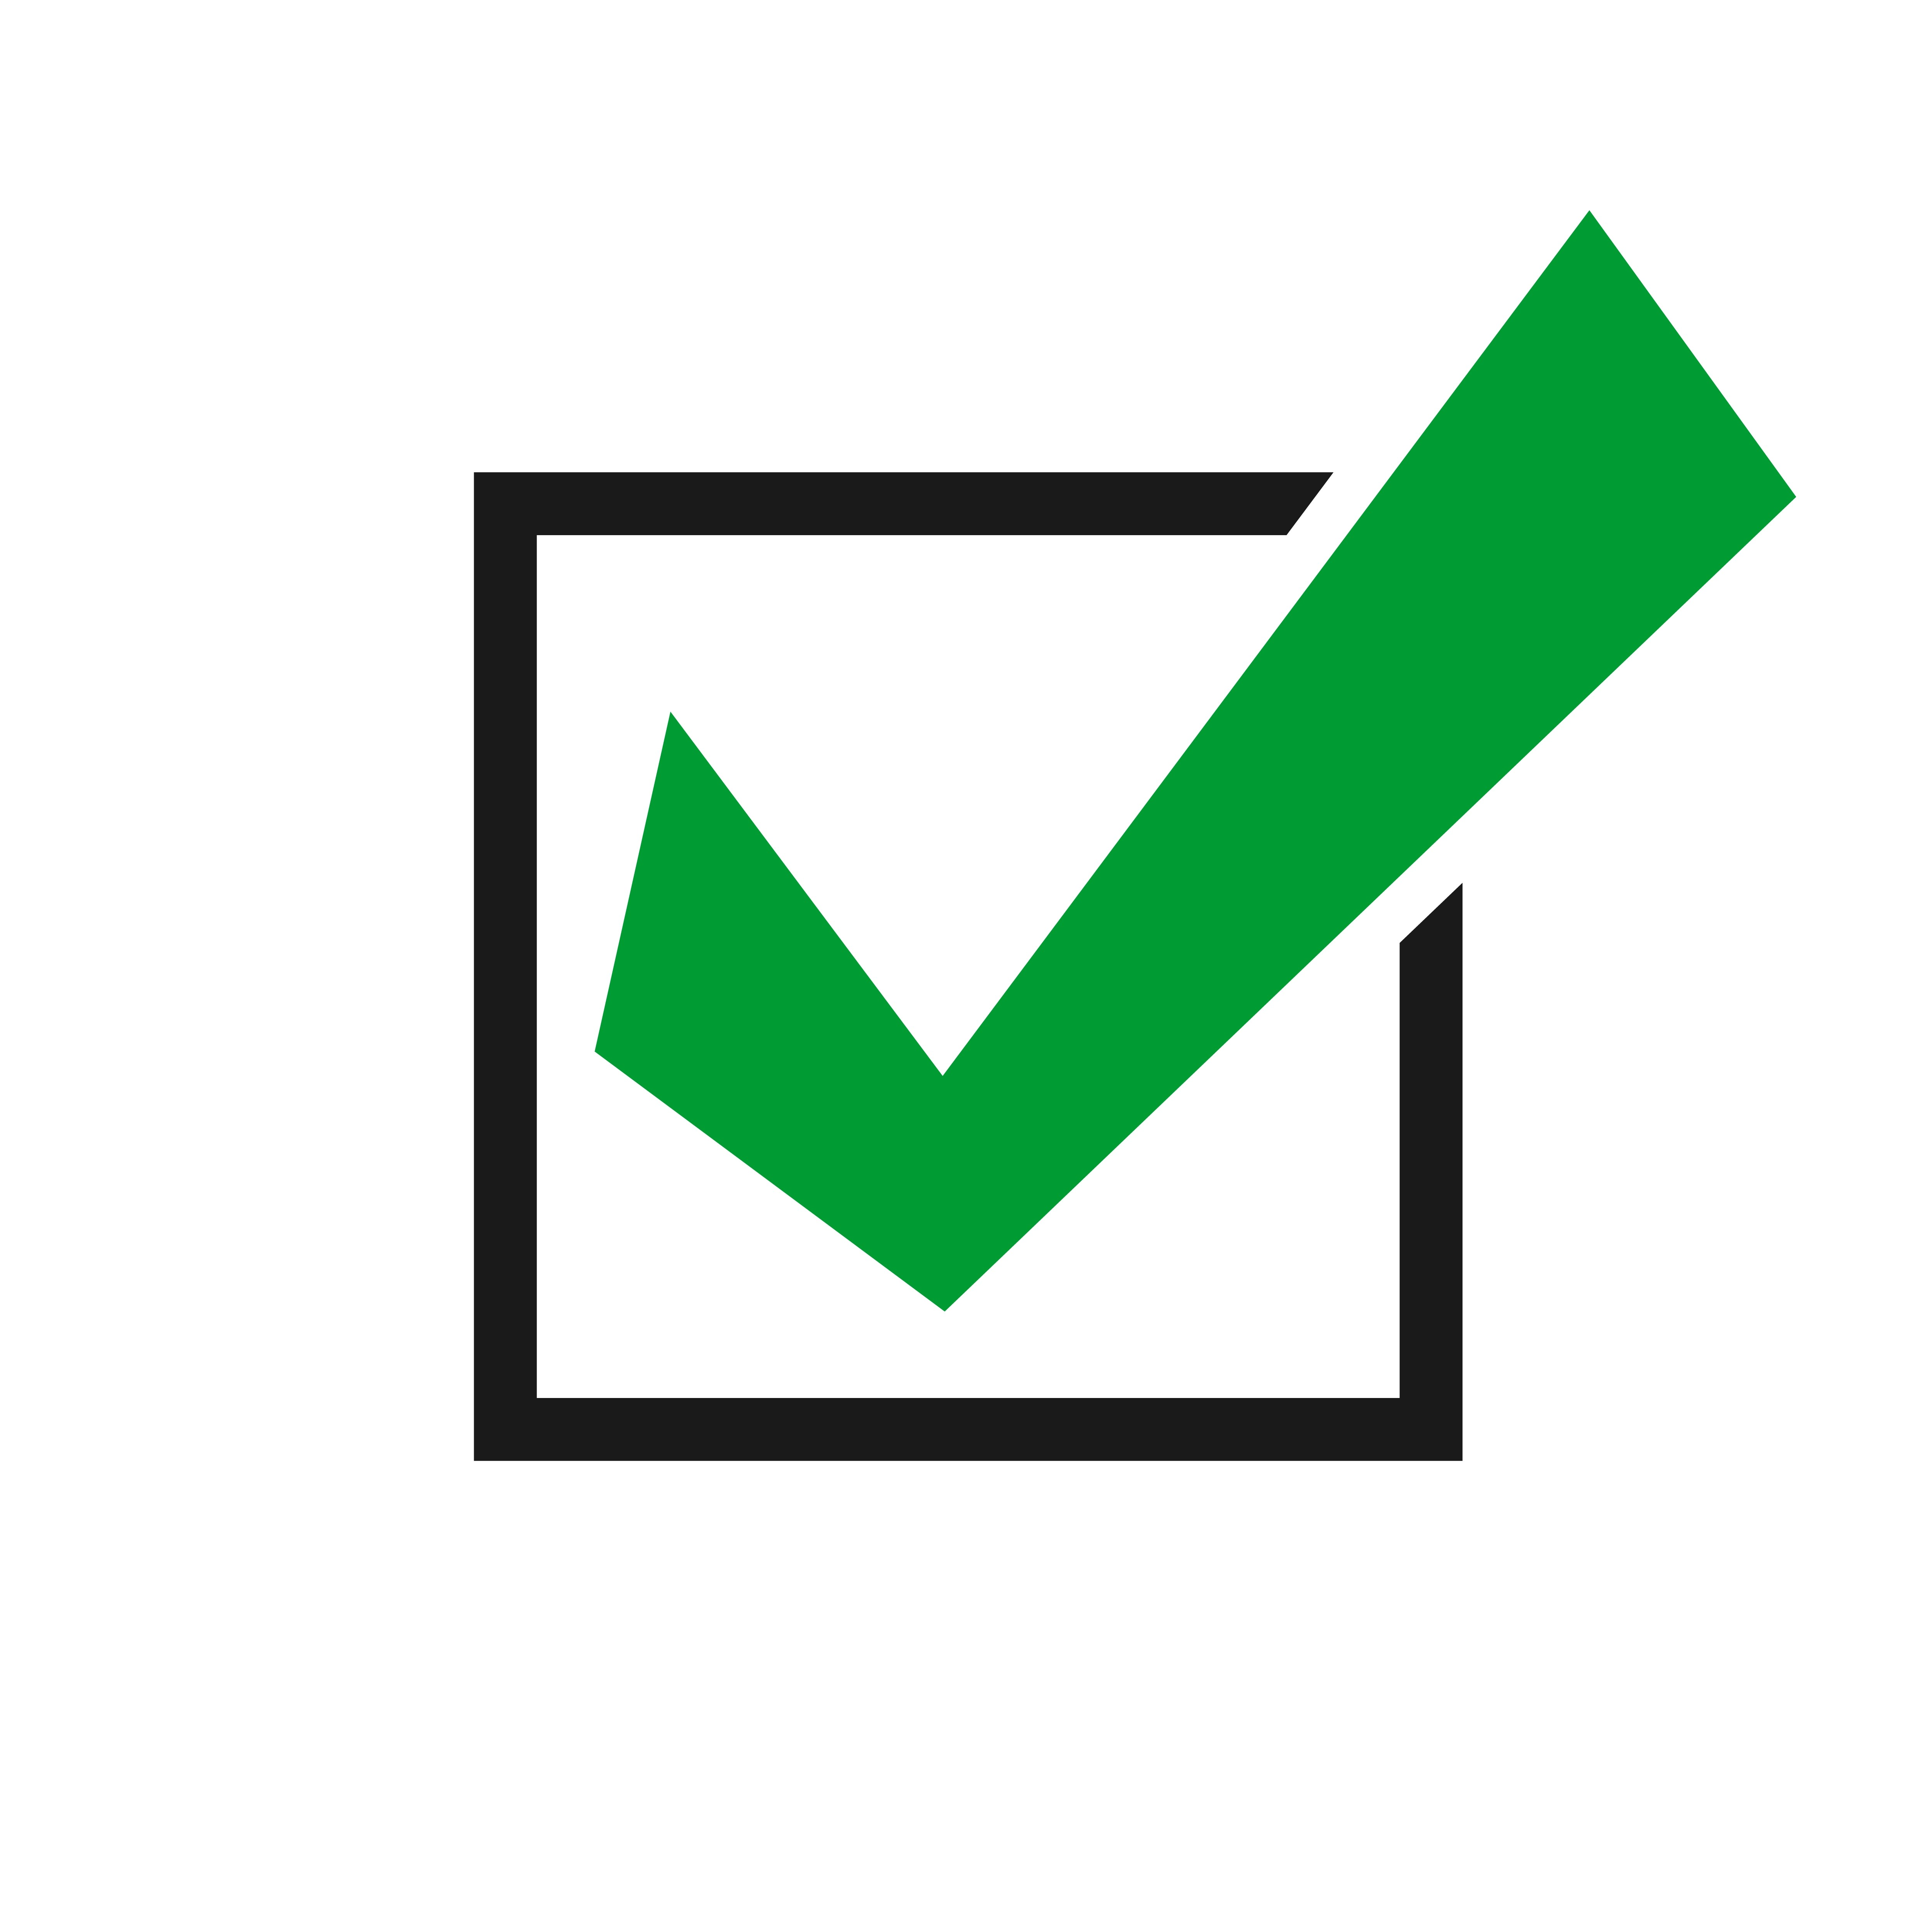 Check Mark Vector Icon - Download Free Vectors, Clipart ... on ✔  id=18826